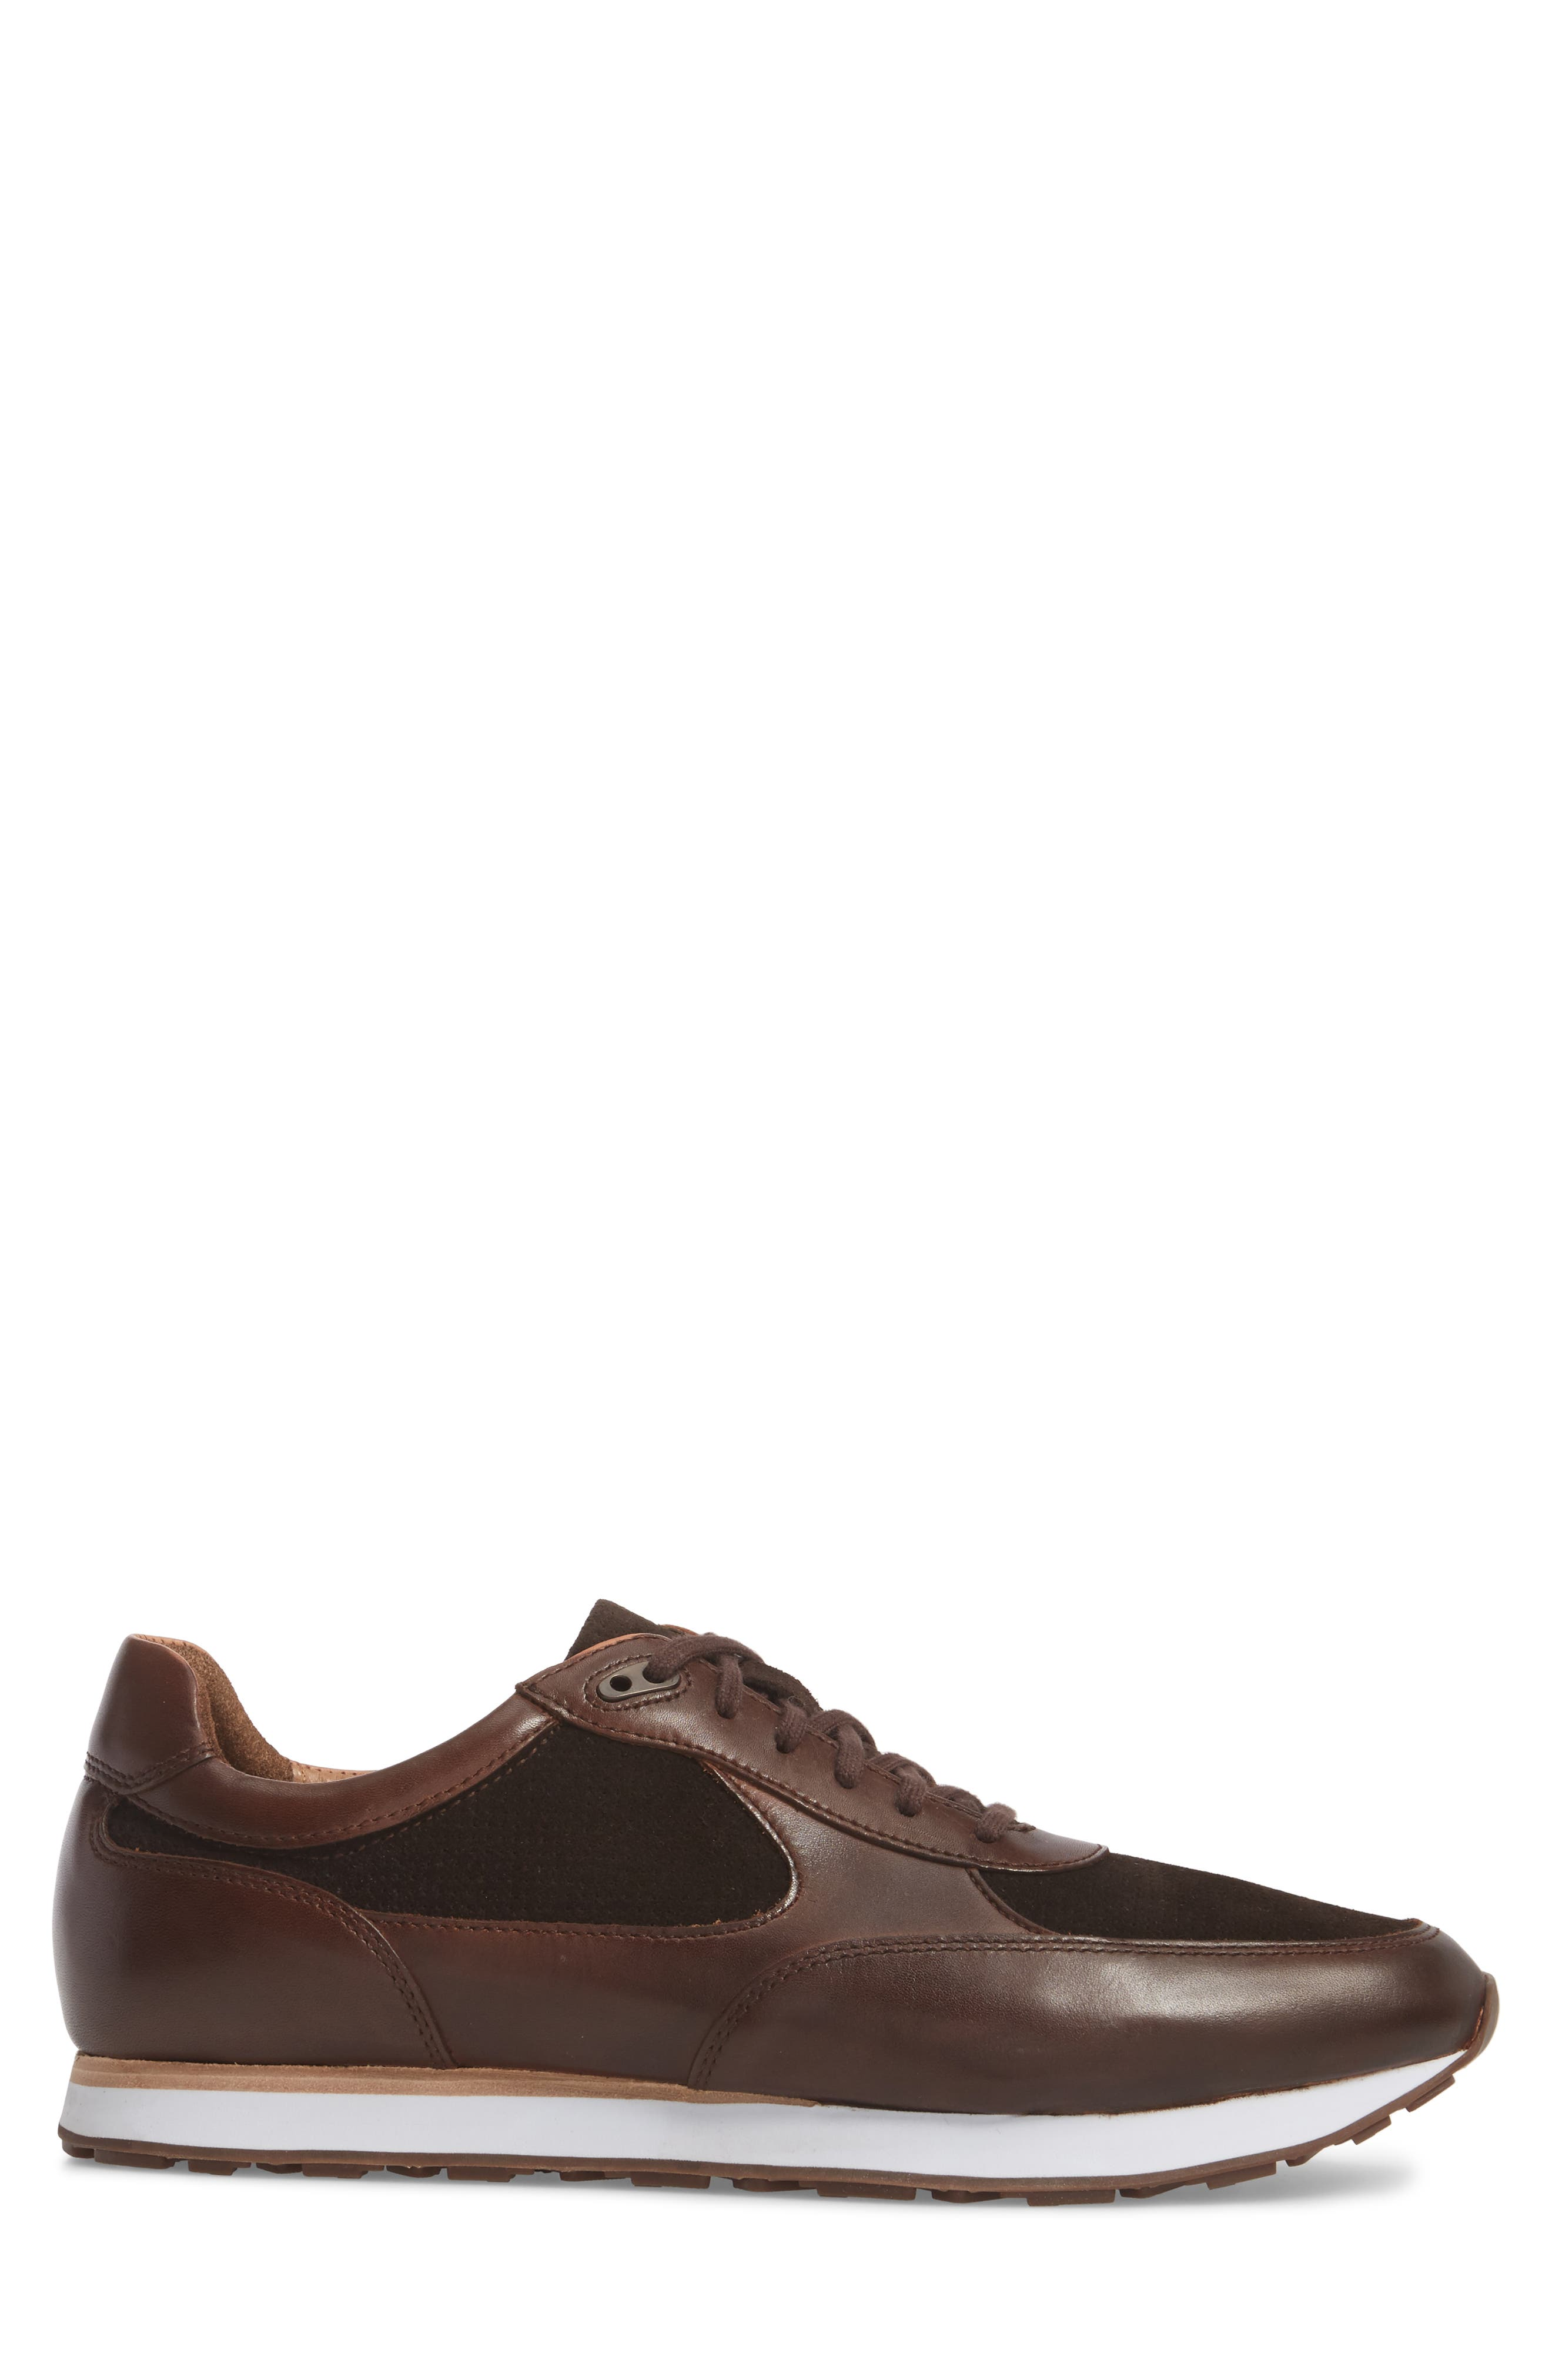 Malek Low Top Sneaker,                             Alternate thumbnail 3, color,                             Mahogany Leather/ Suede